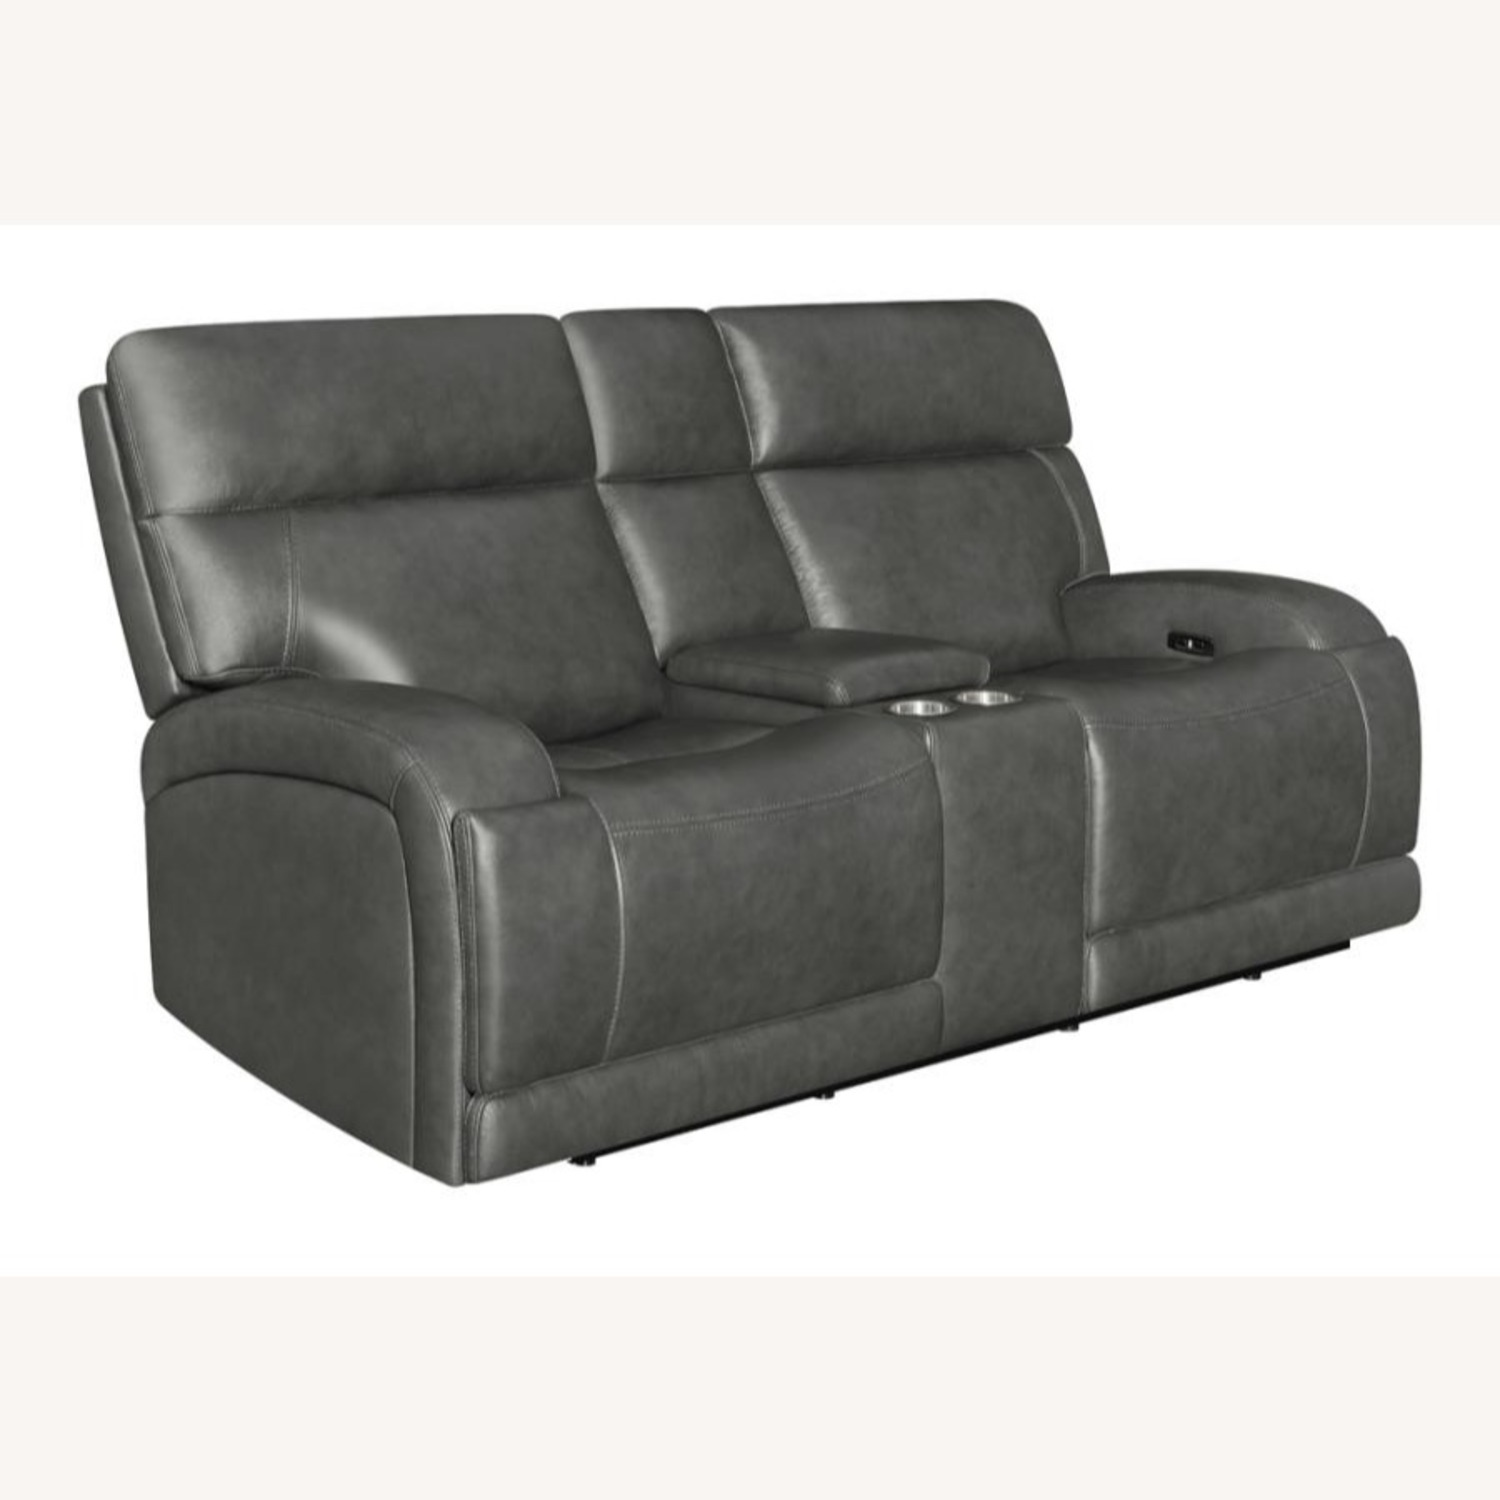 Power Loveseat W/ Console In Charcoal Leatherette - image-0